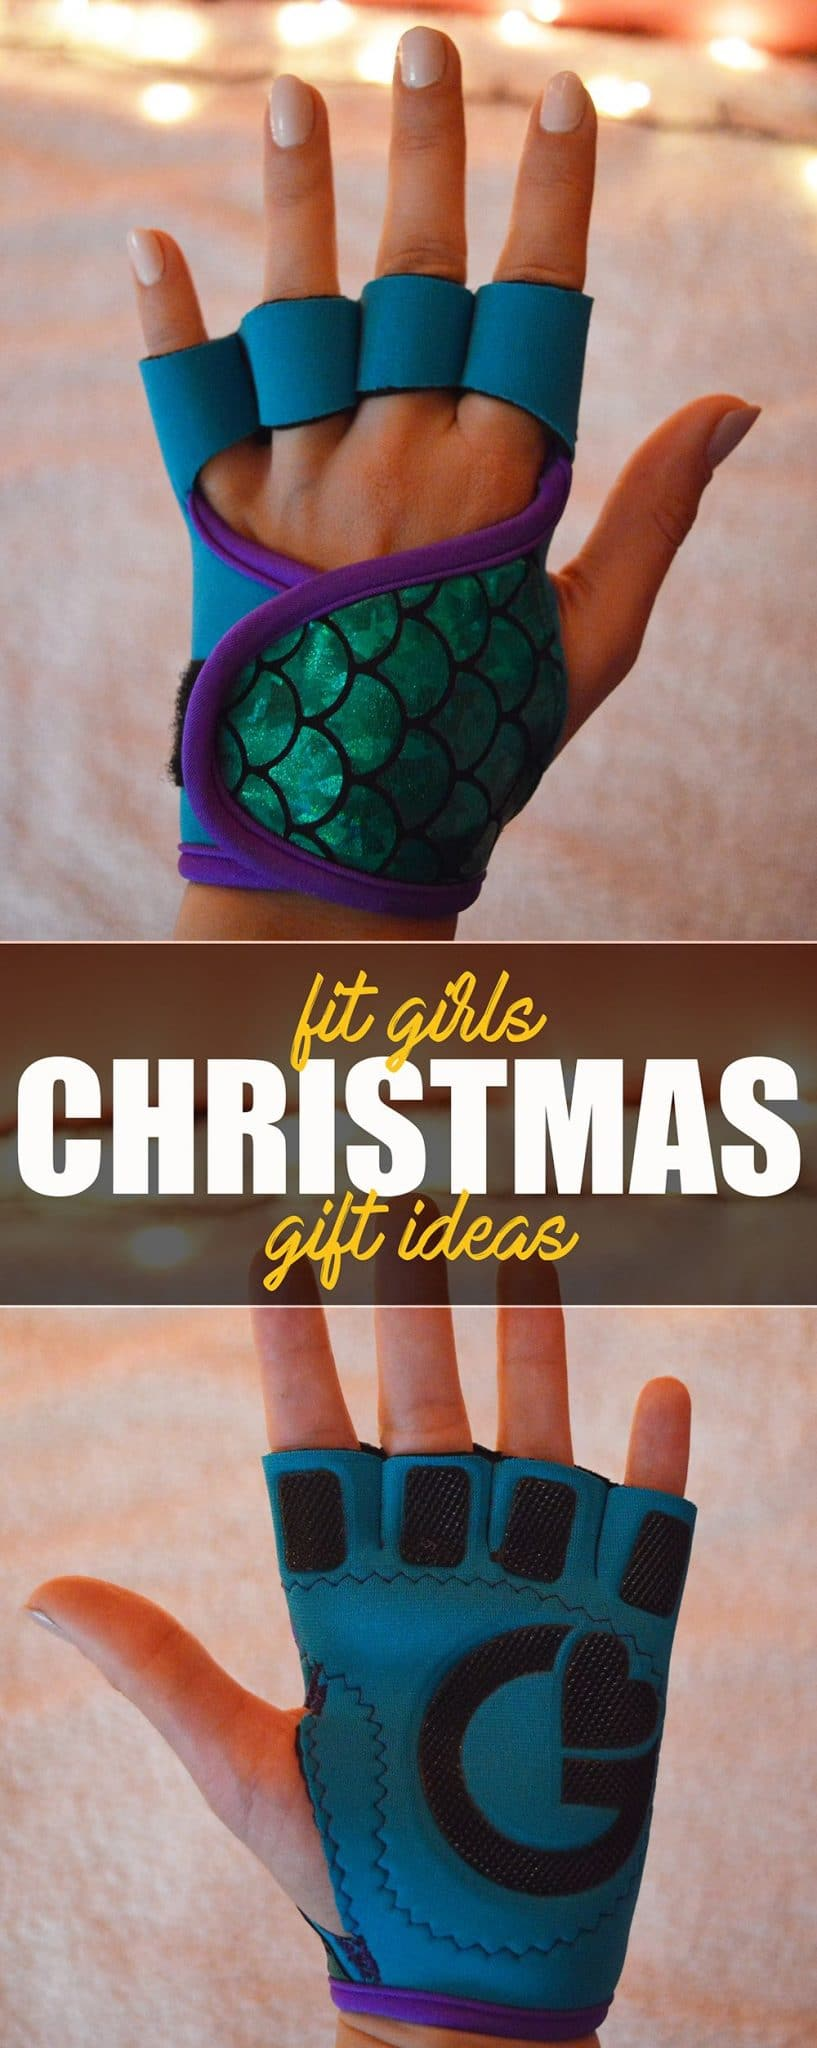 g-loves-1-25-fitness-gift-ideas-the-best-fit-girls-christmas-presents